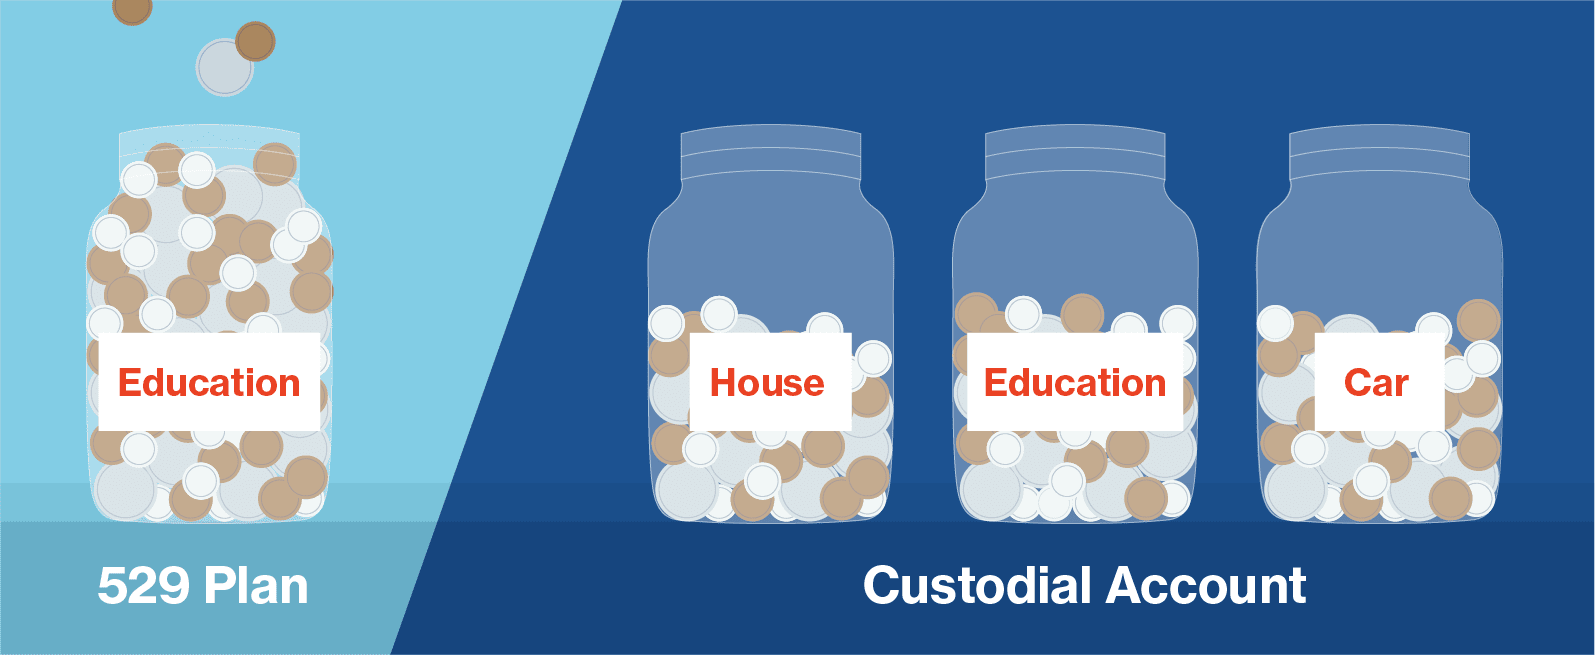 custodial accounts offer much more flexibility than 529 plans